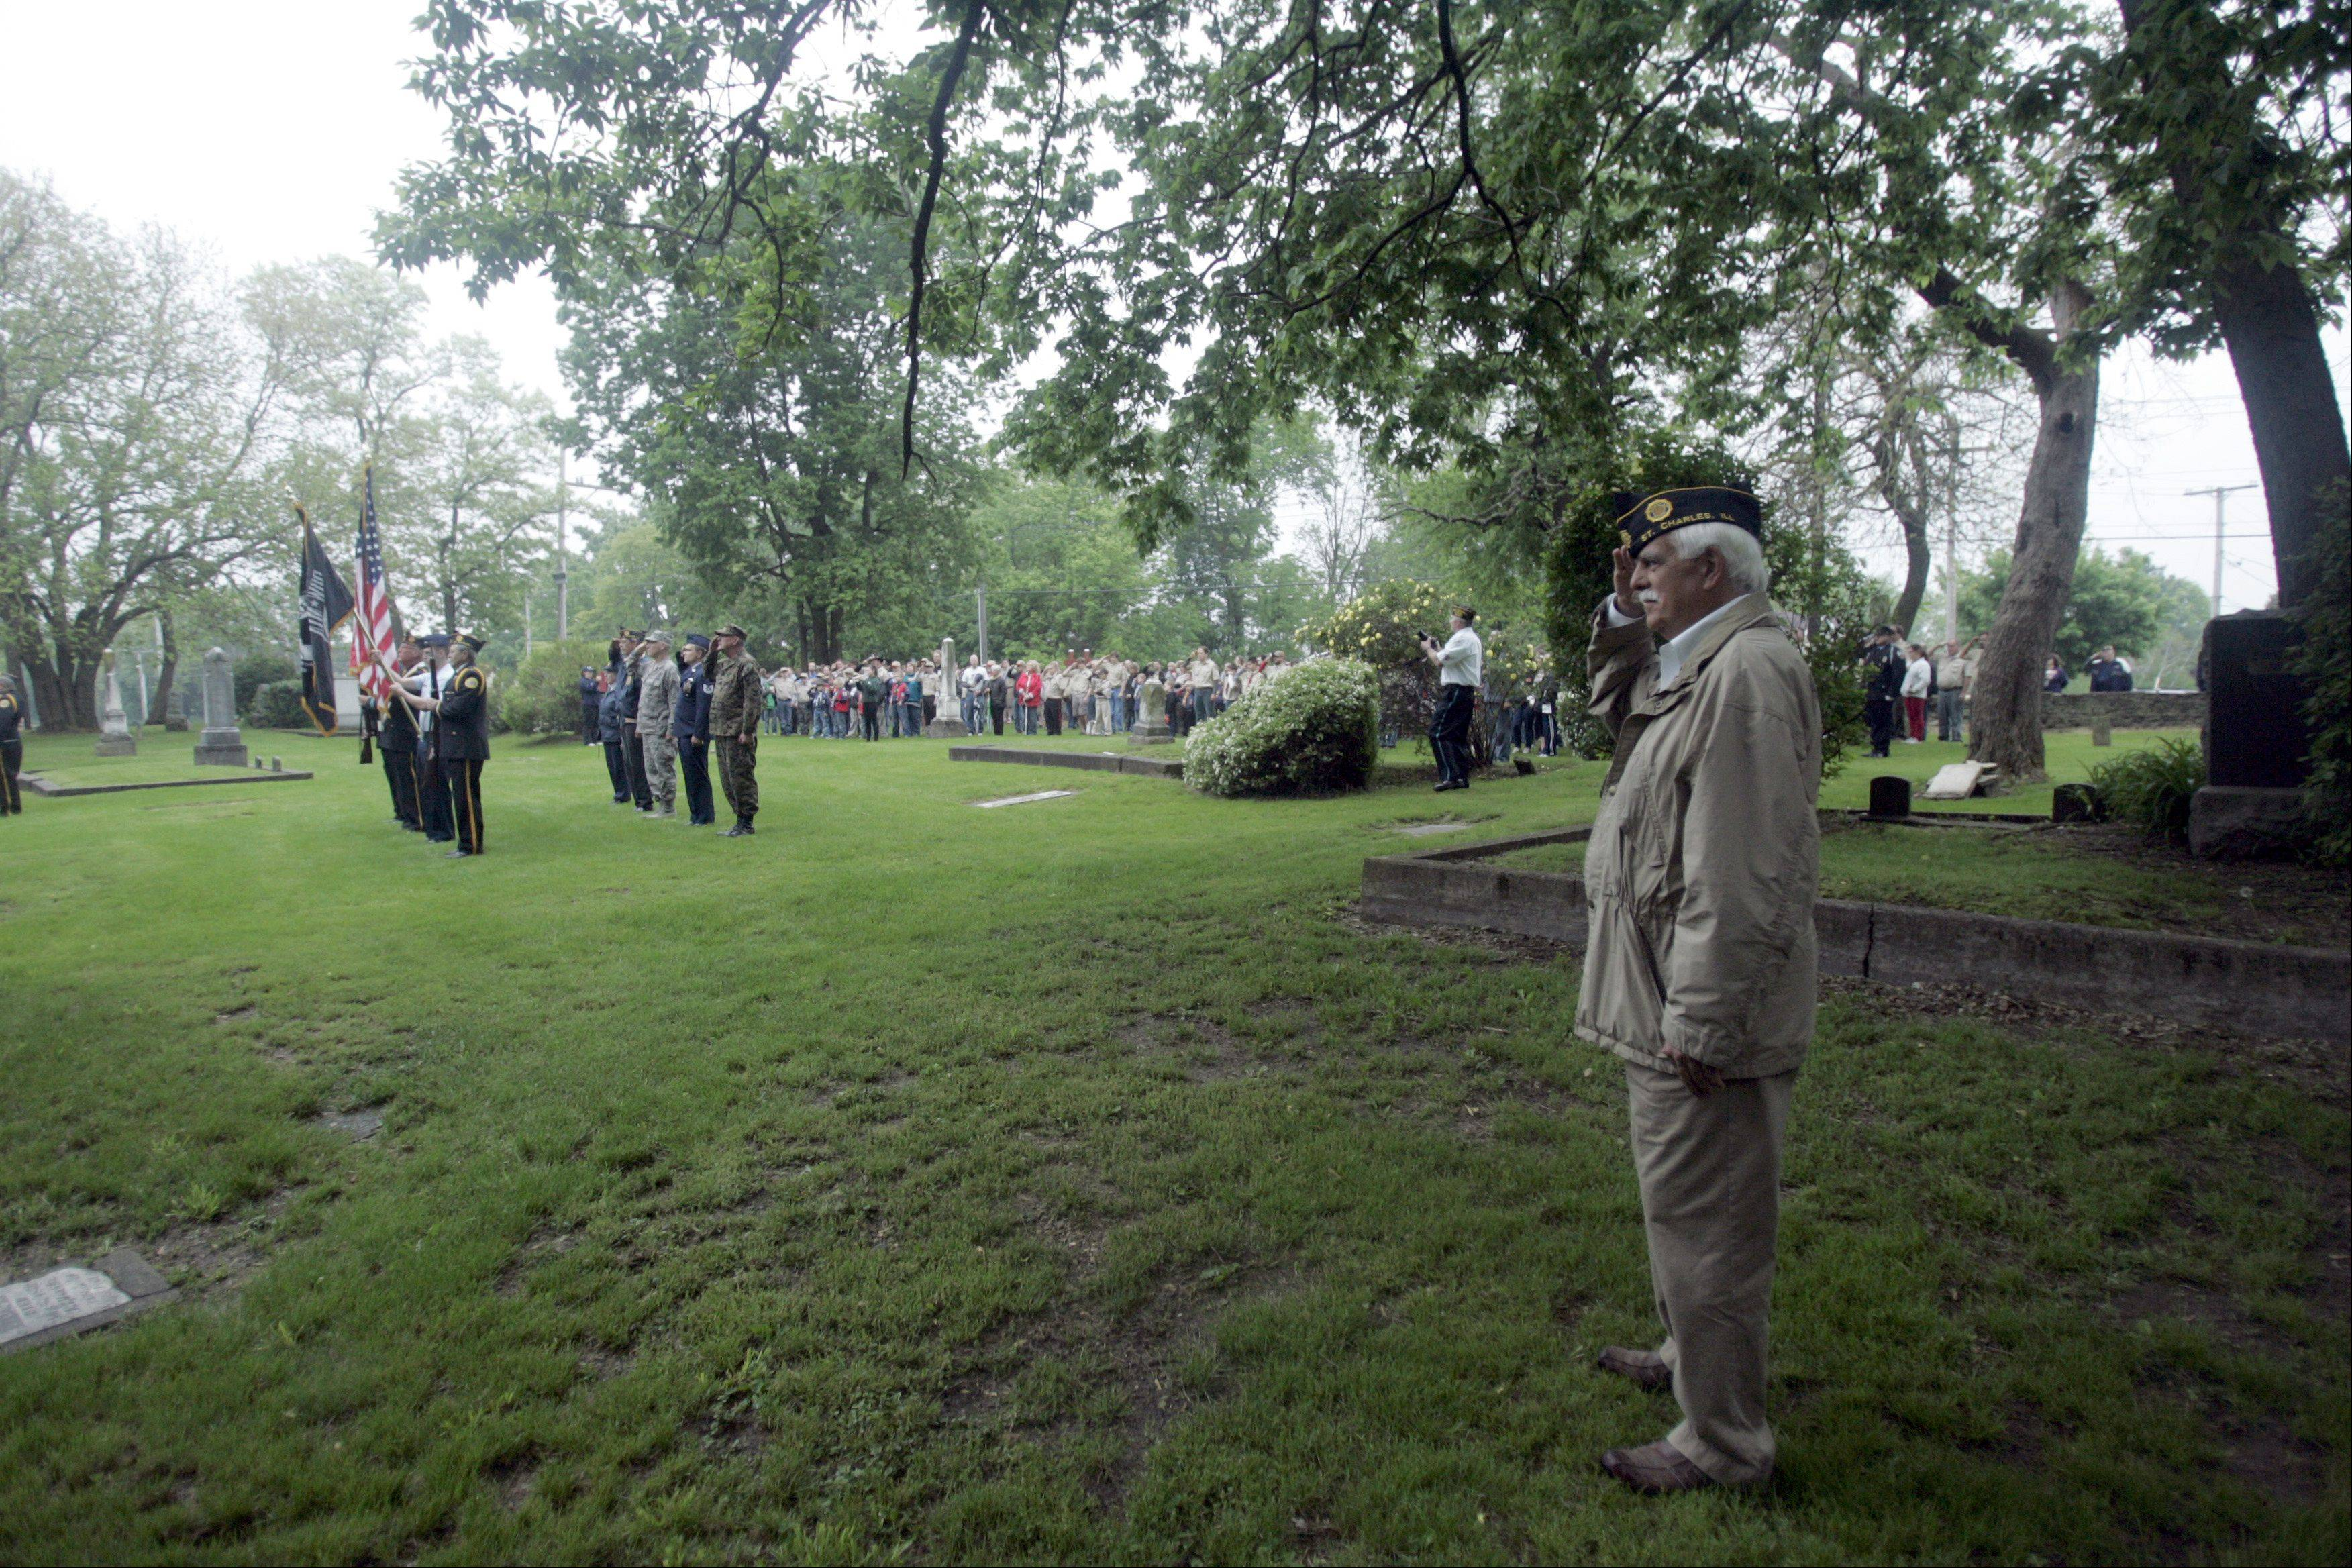 Ron Johnson of St. Charles and American Legion Post 342 stands at attention and salutes as the colors are presented during the Memorial Day celebration at South Cemetery in St. Charles early Monday morning.